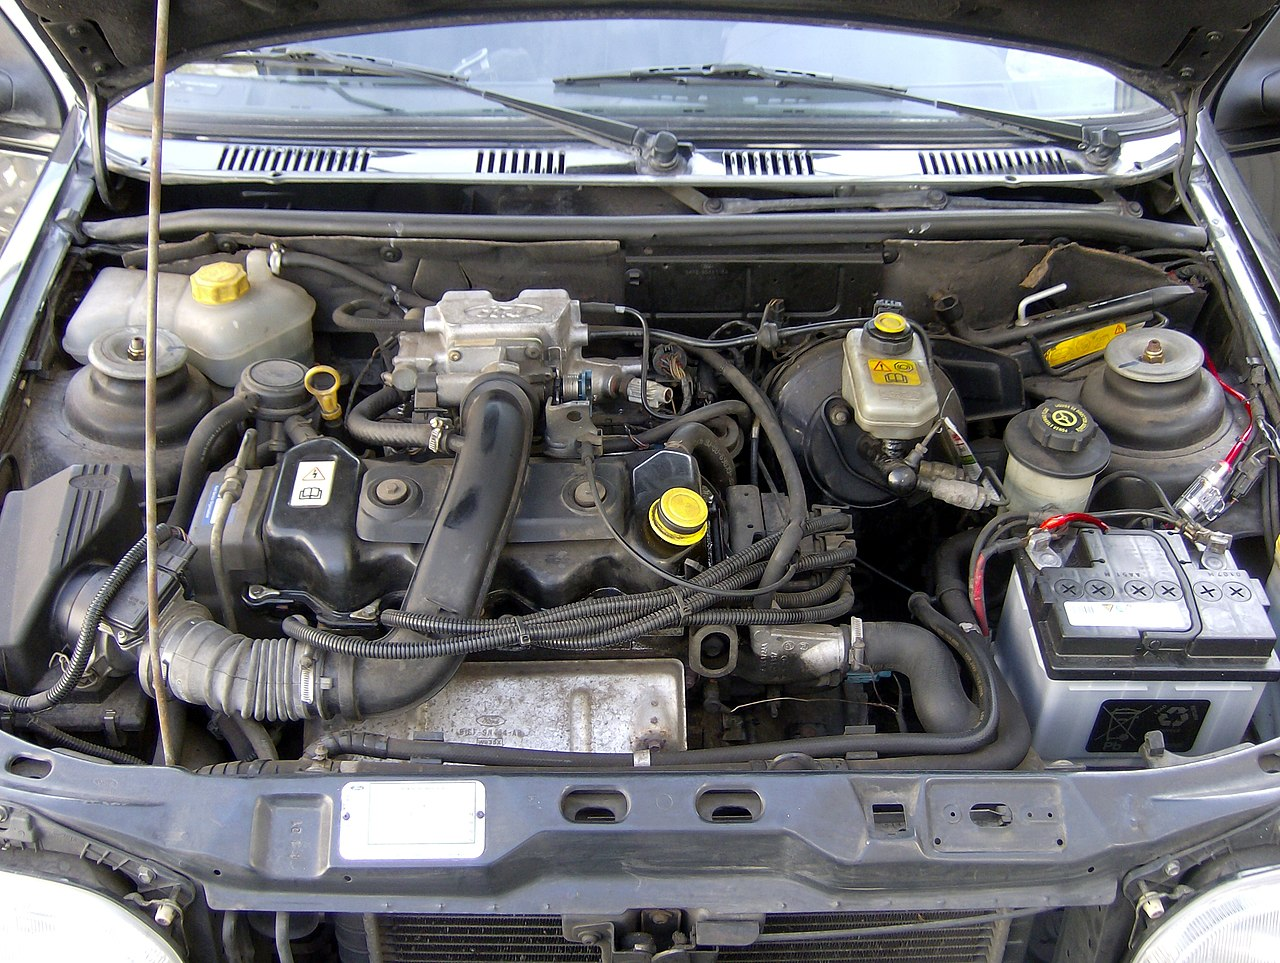 Pinouts likewise 95 Ford Explorer Wiring Diagrams additionally Watch furthermore Bosch O2 Sensor Wiring Diagram additionally File Ford Fiesta MK3 GFJ 1995 engine. on 2004 mustang gt wiring diagram